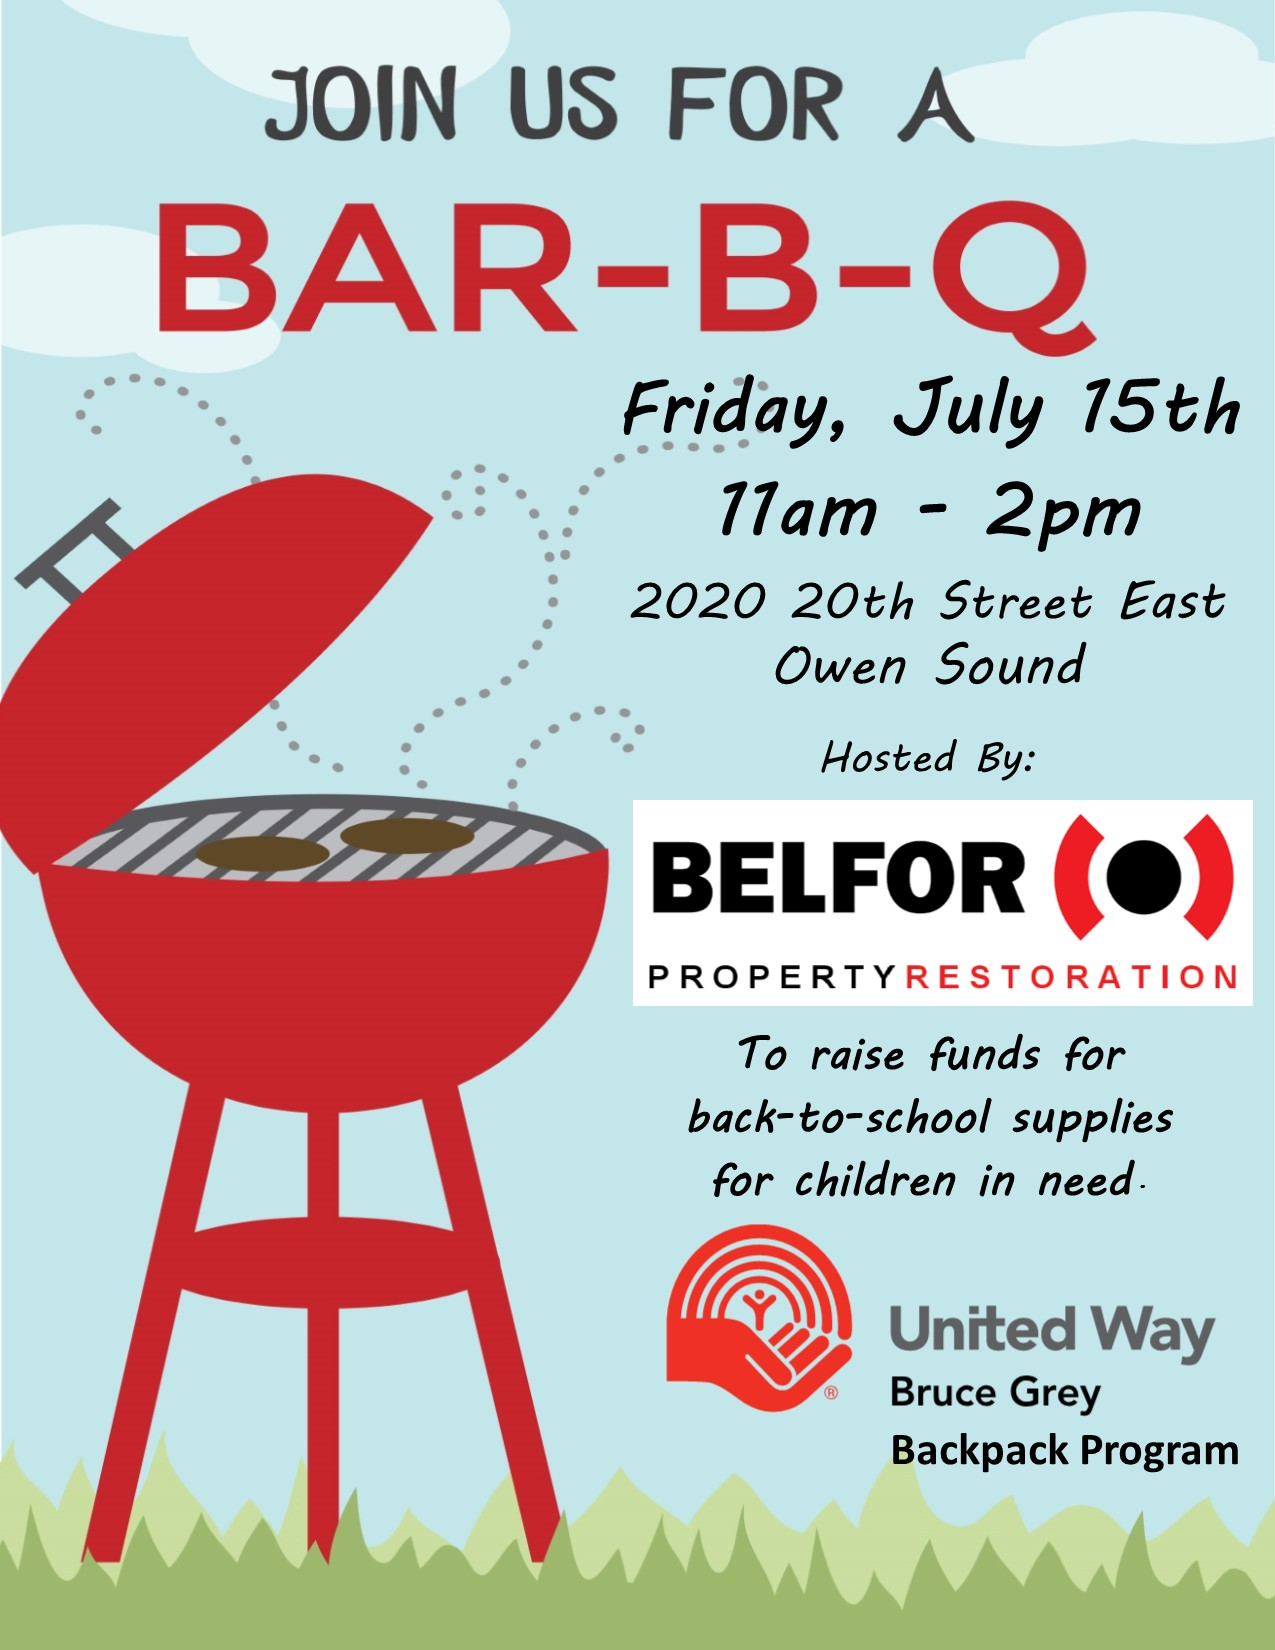 BELFOR hosting BBQ for Backpack Program